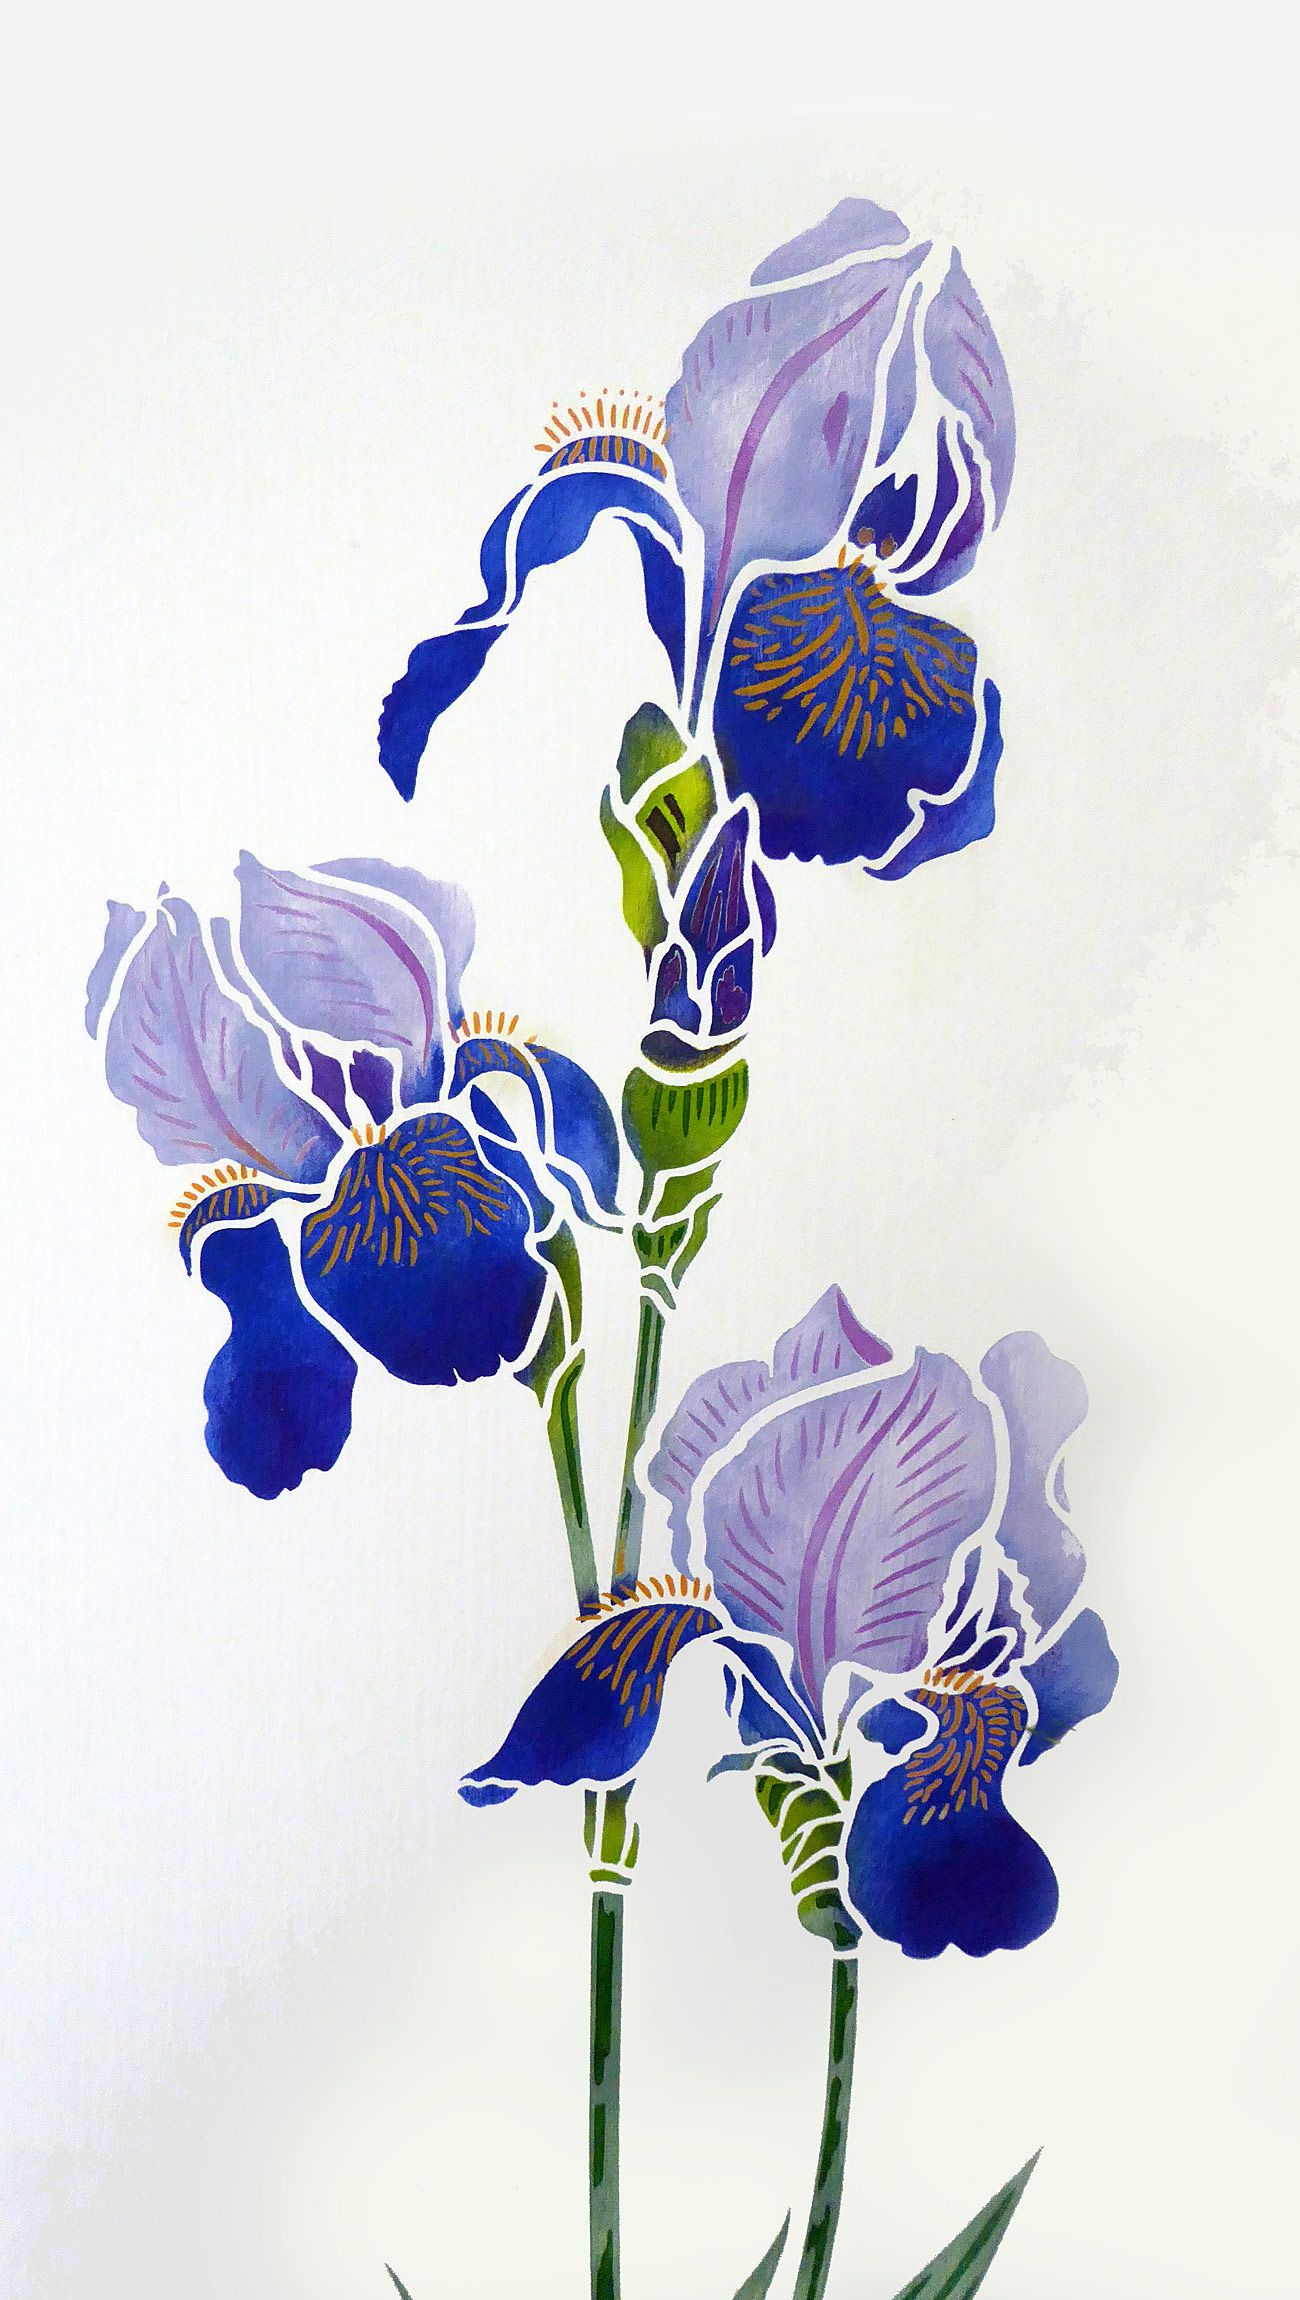 Exquisite Large 2 Sheet Flower Stencil The Large Agapanthus Stencil